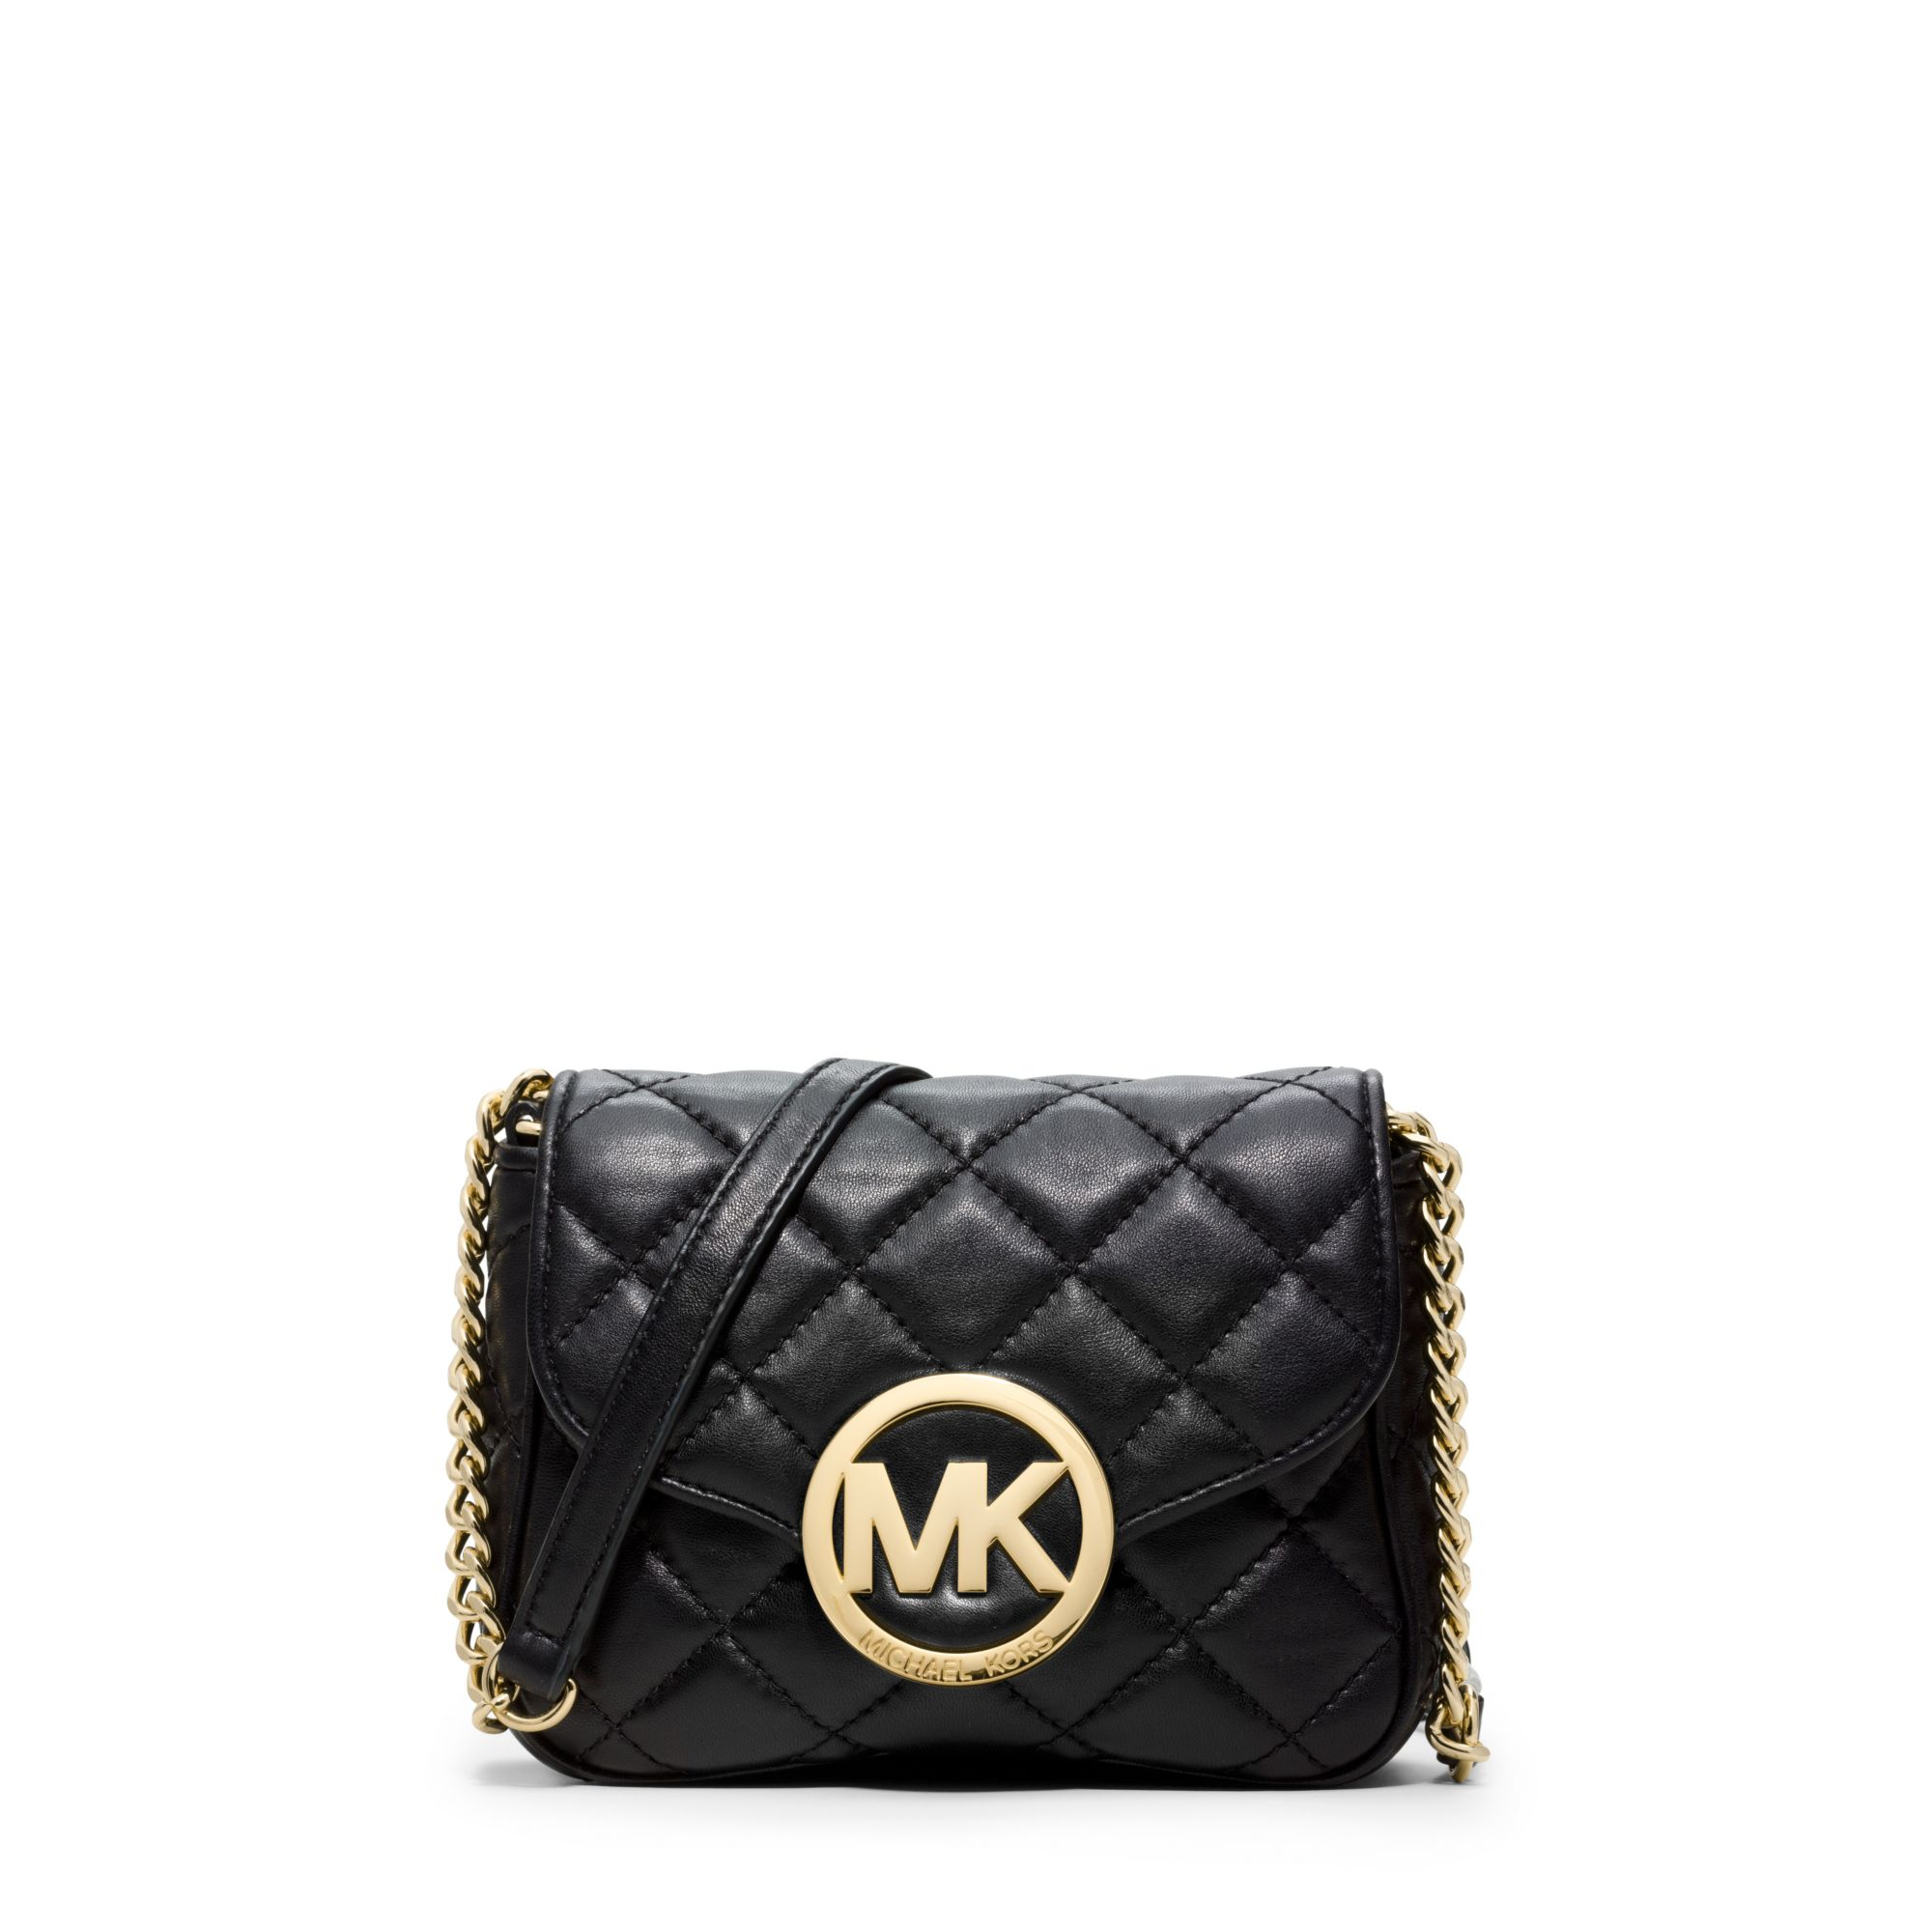 Michael kors Fulton Quilted-leather Crossbody in Black | Lyst : michael kors fulton quilted tote - Adamdwight.com